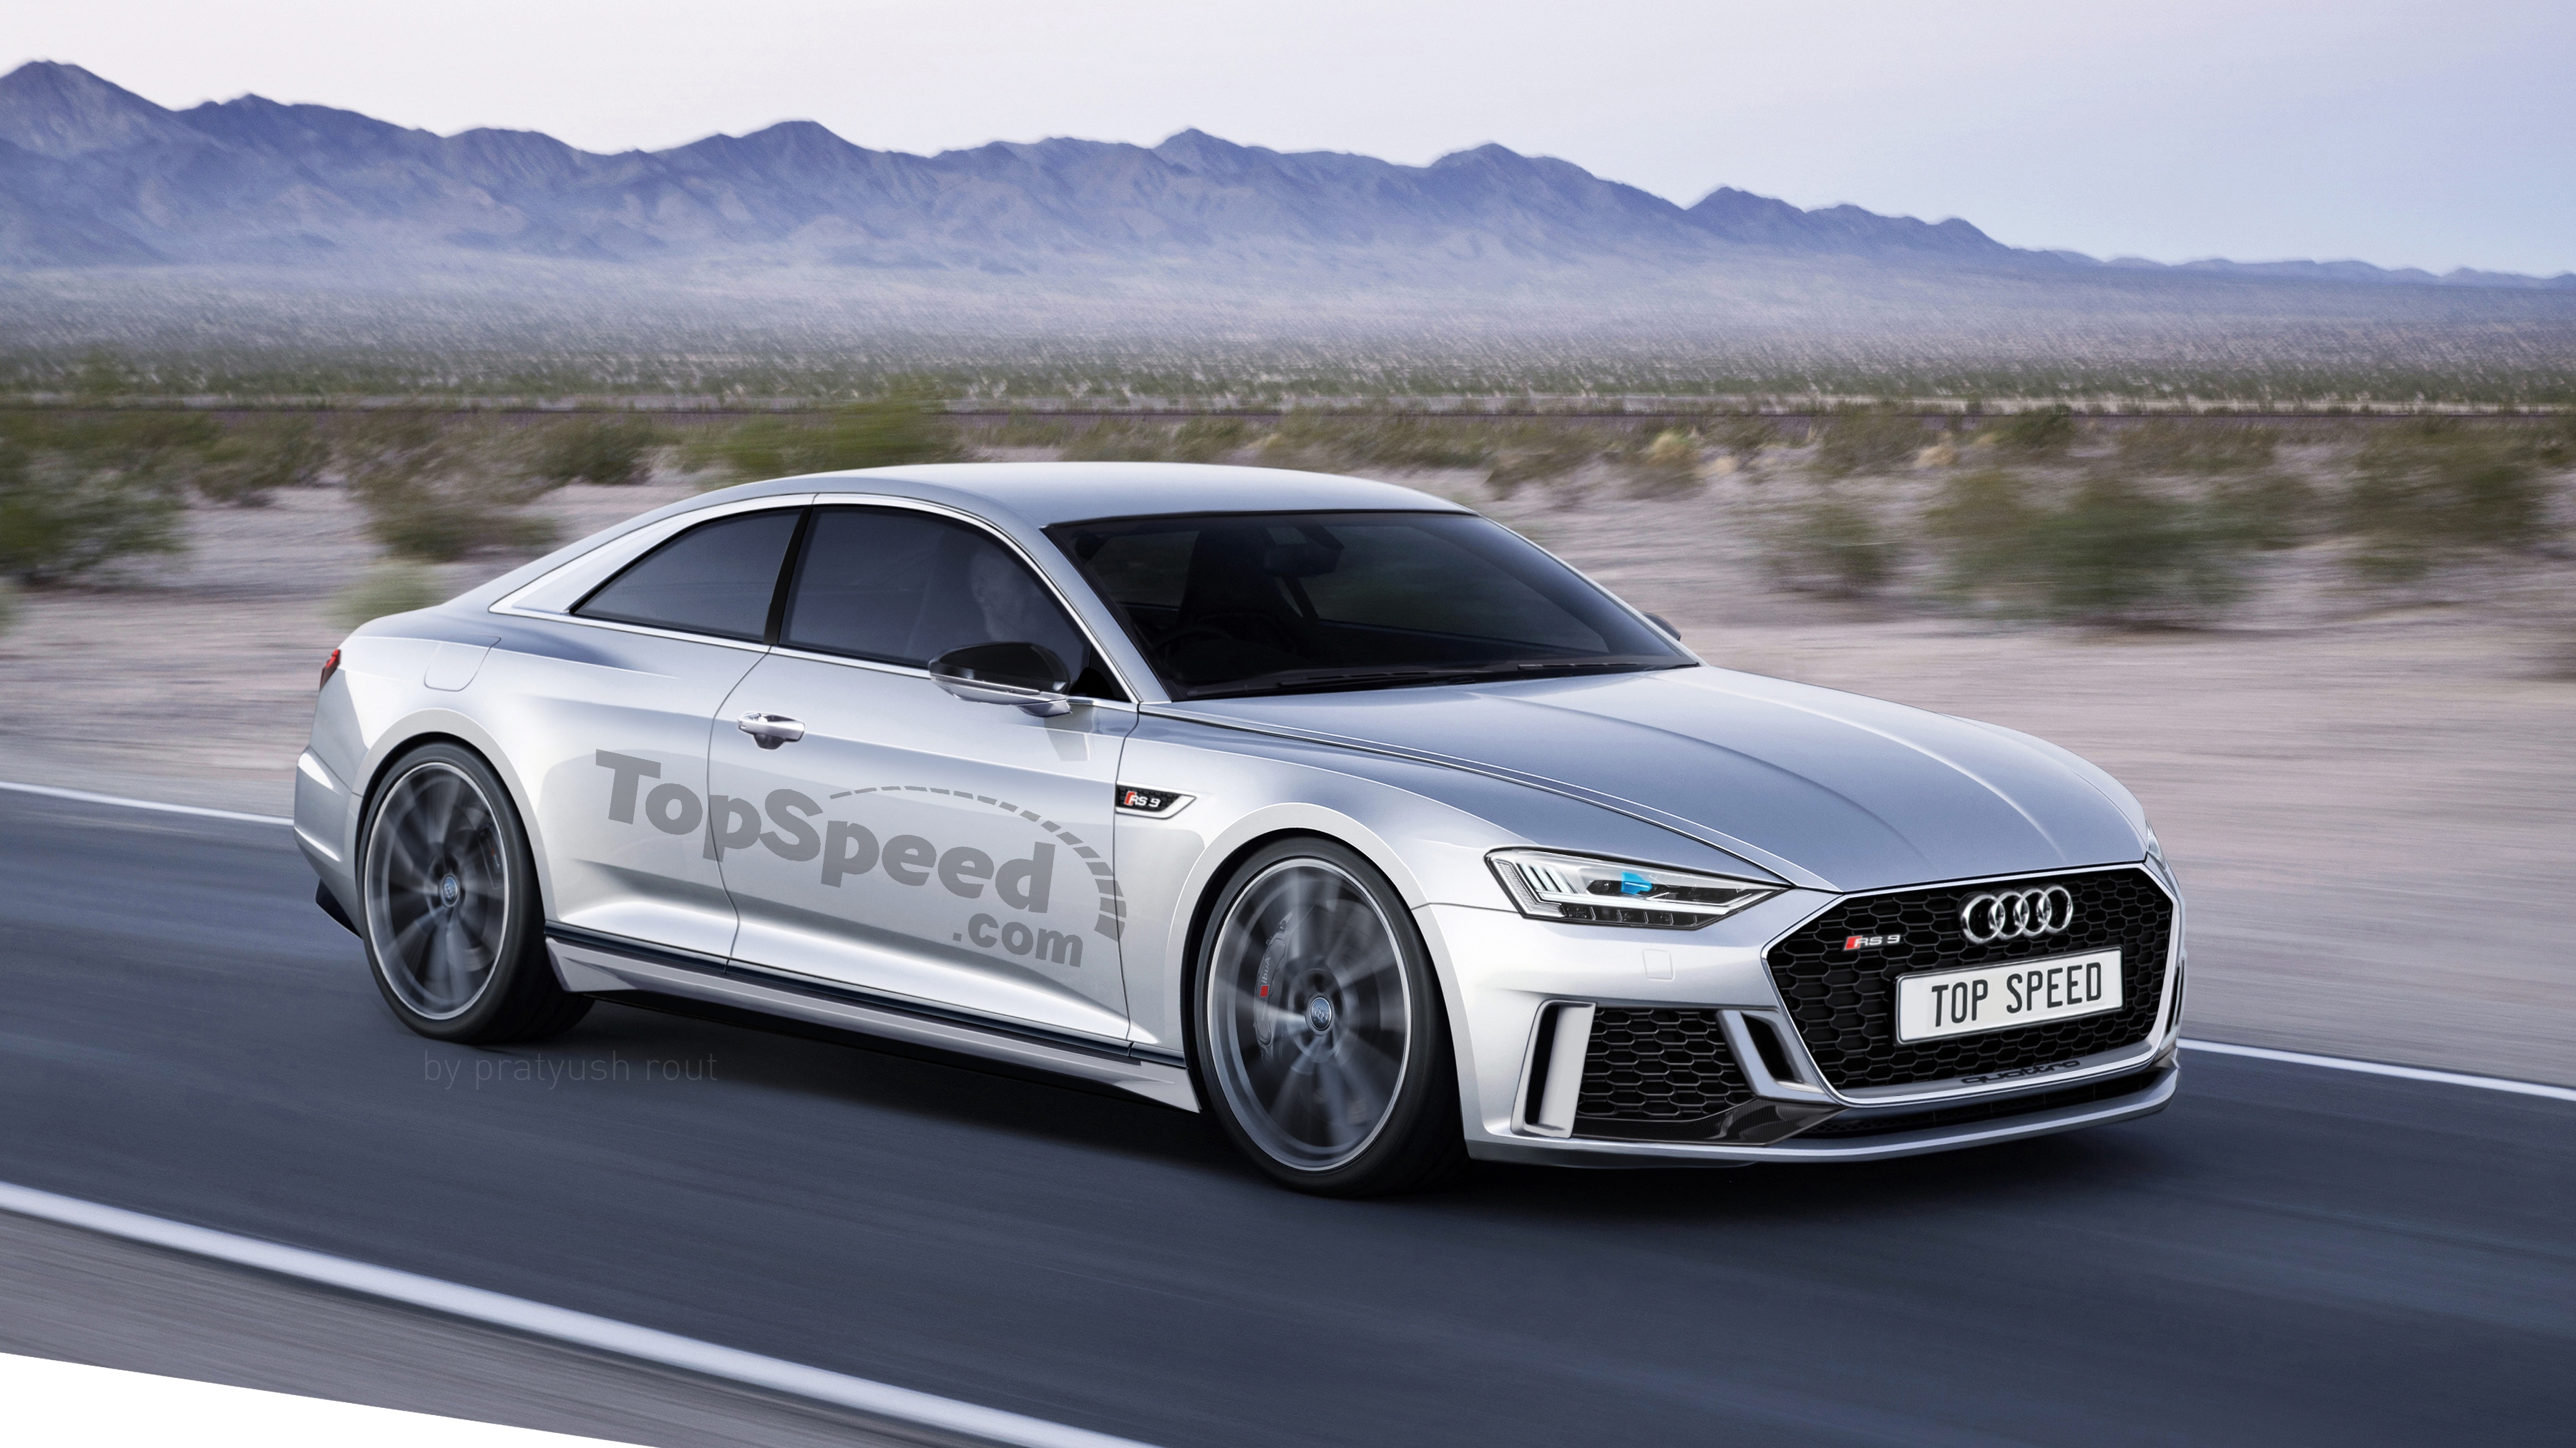 2019 audi rs9 coupe pictures photos wallpapers top speed. Black Bedroom Furniture Sets. Home Design Ideas